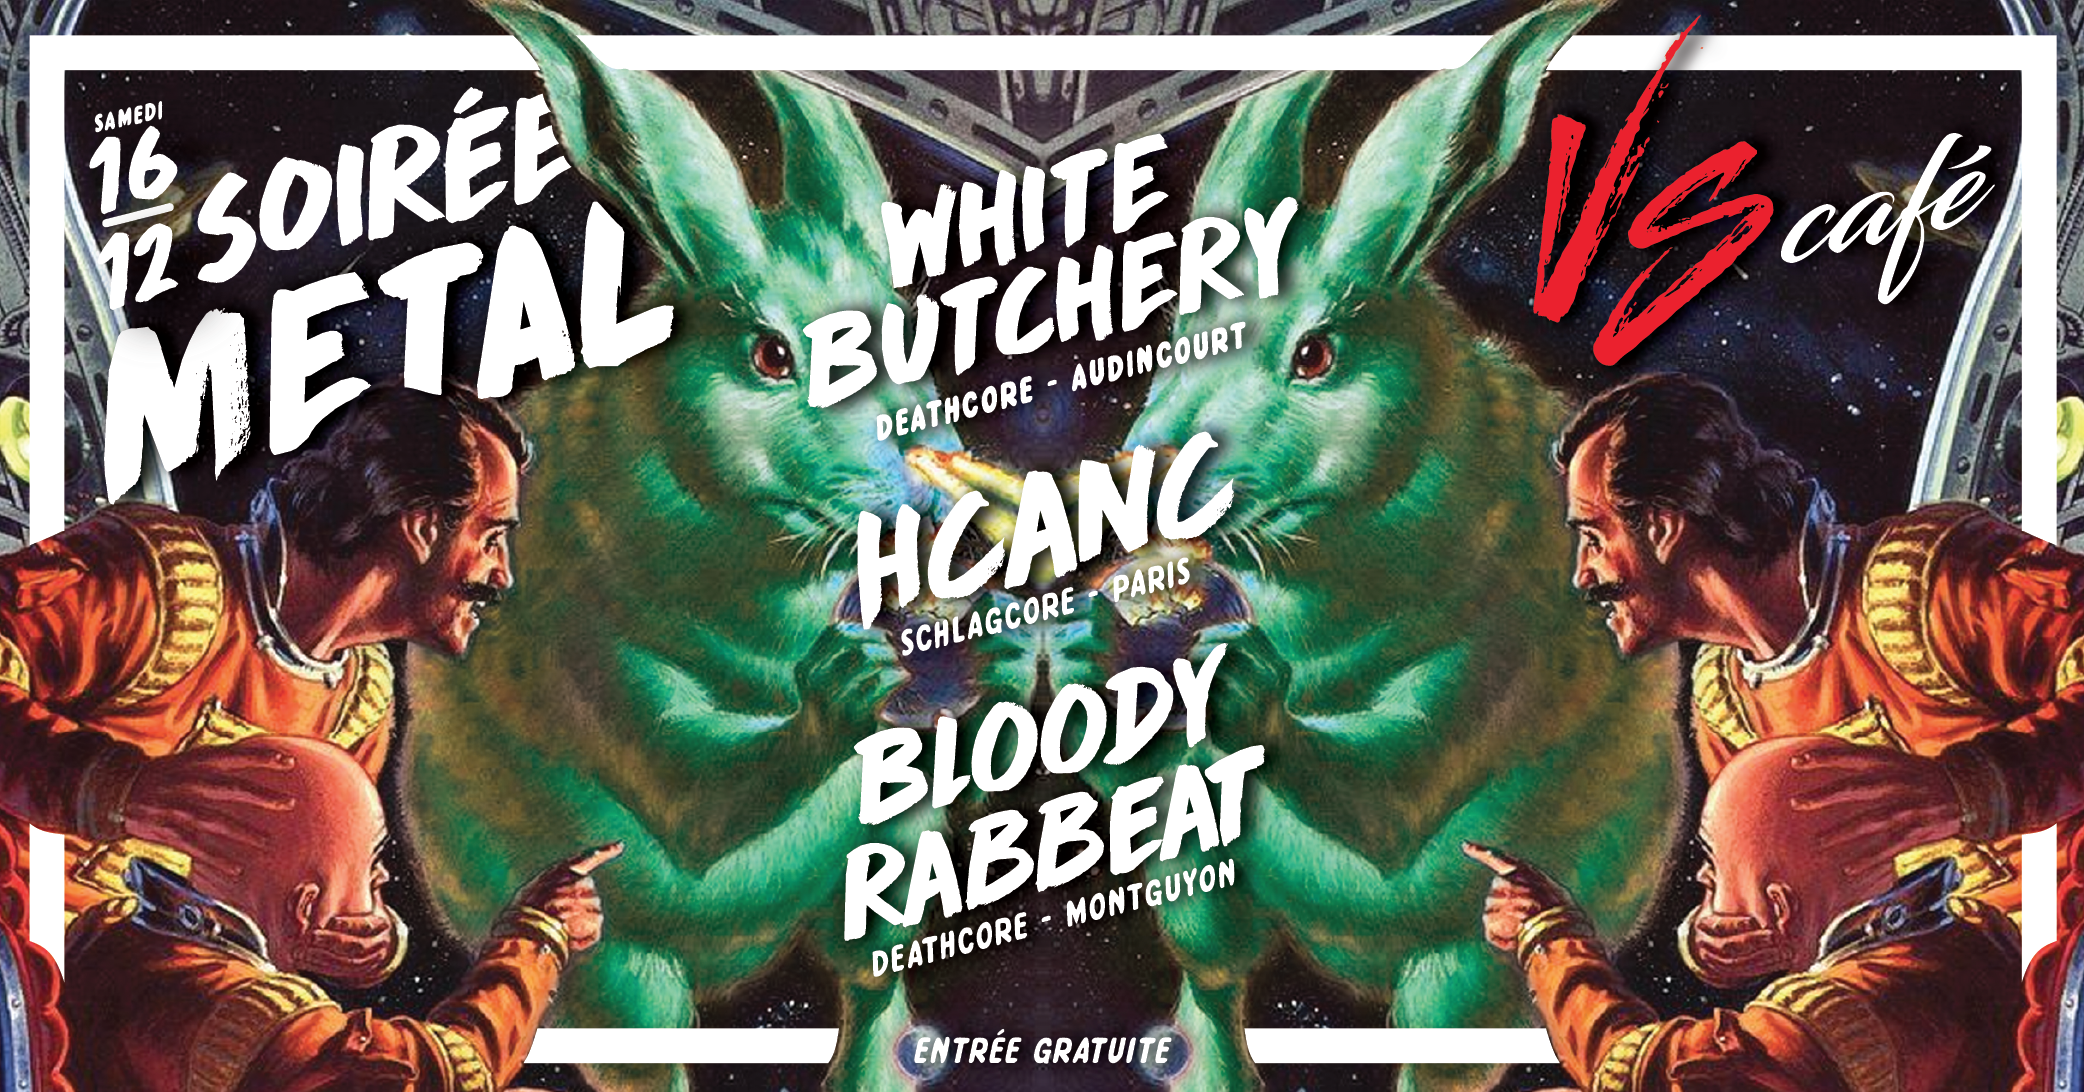 White Butchery @ Lure